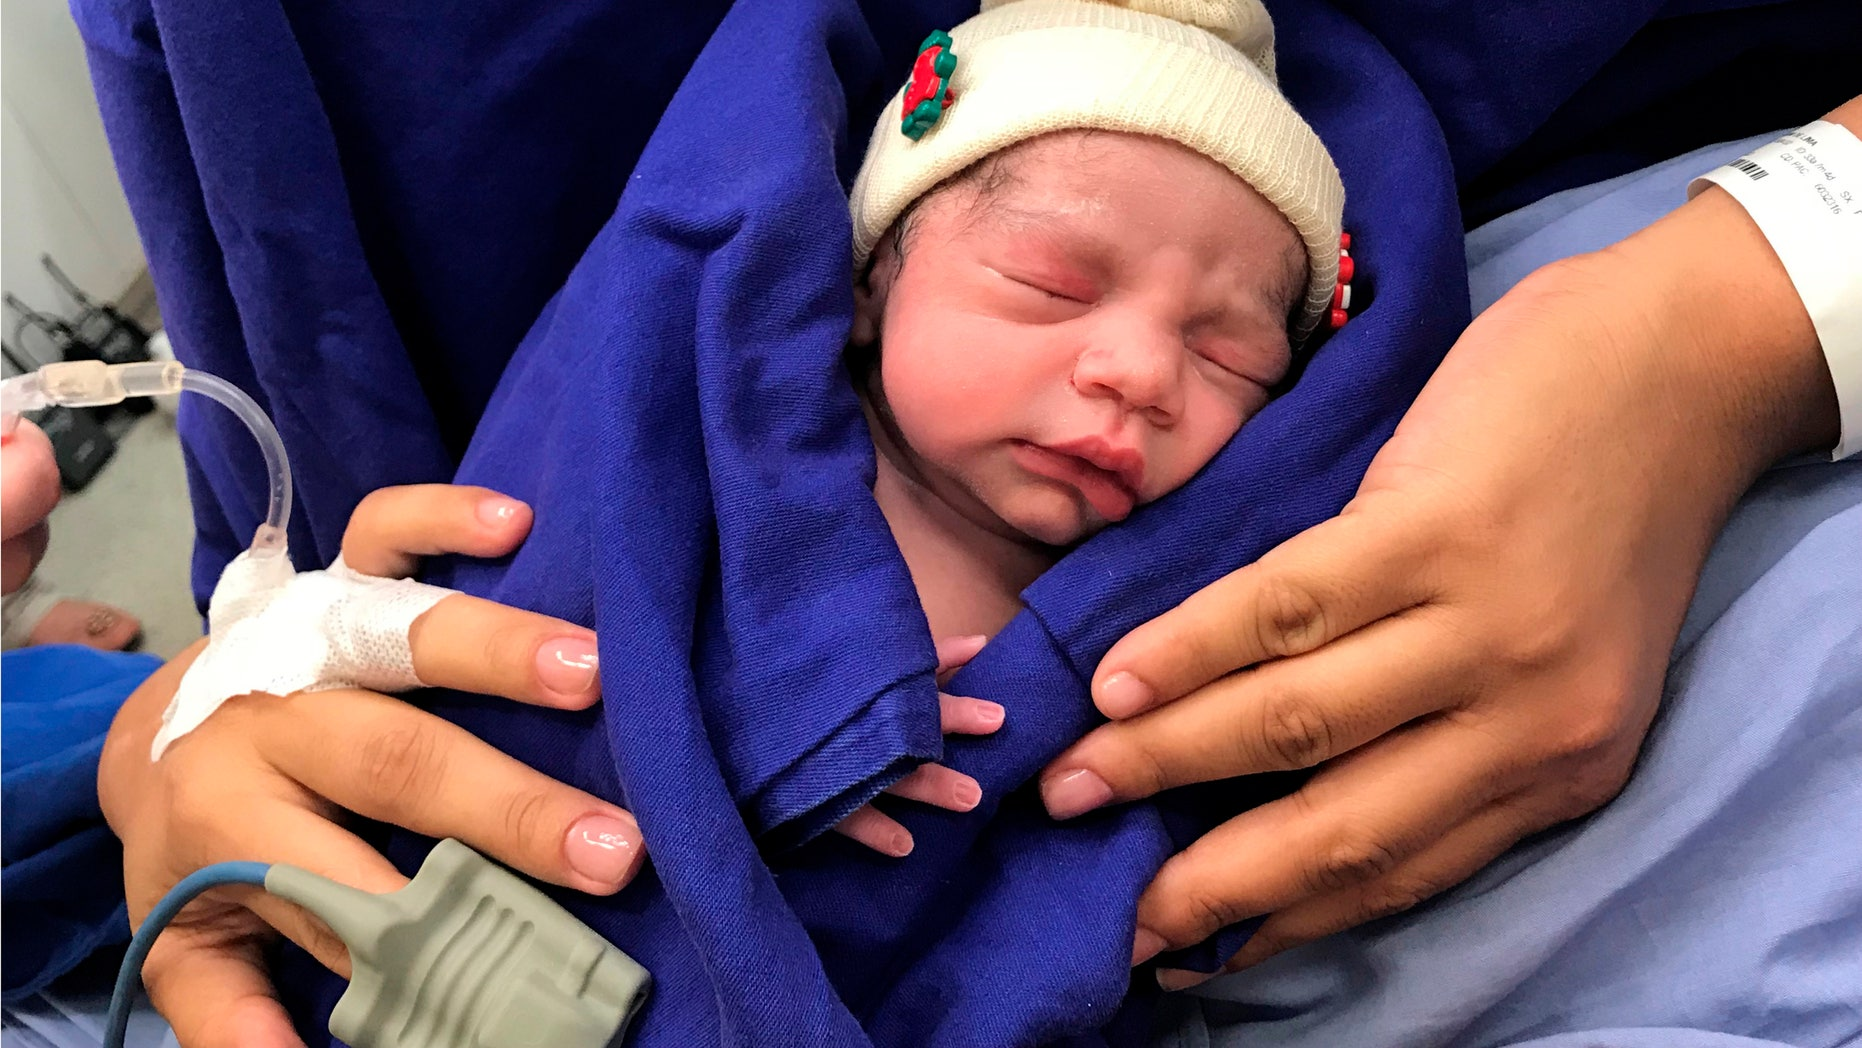 This Dec. 15, 2017 photo provided by transplant surgeon Dr. Wellington Andraus shows the baby girl born to a woman with a uterus transplanted from a deceased donor at the Hospital das Clinicas of the University of Sao Paulo School of Medicine, Sao Paulo, Brazil, on the day of her birth.